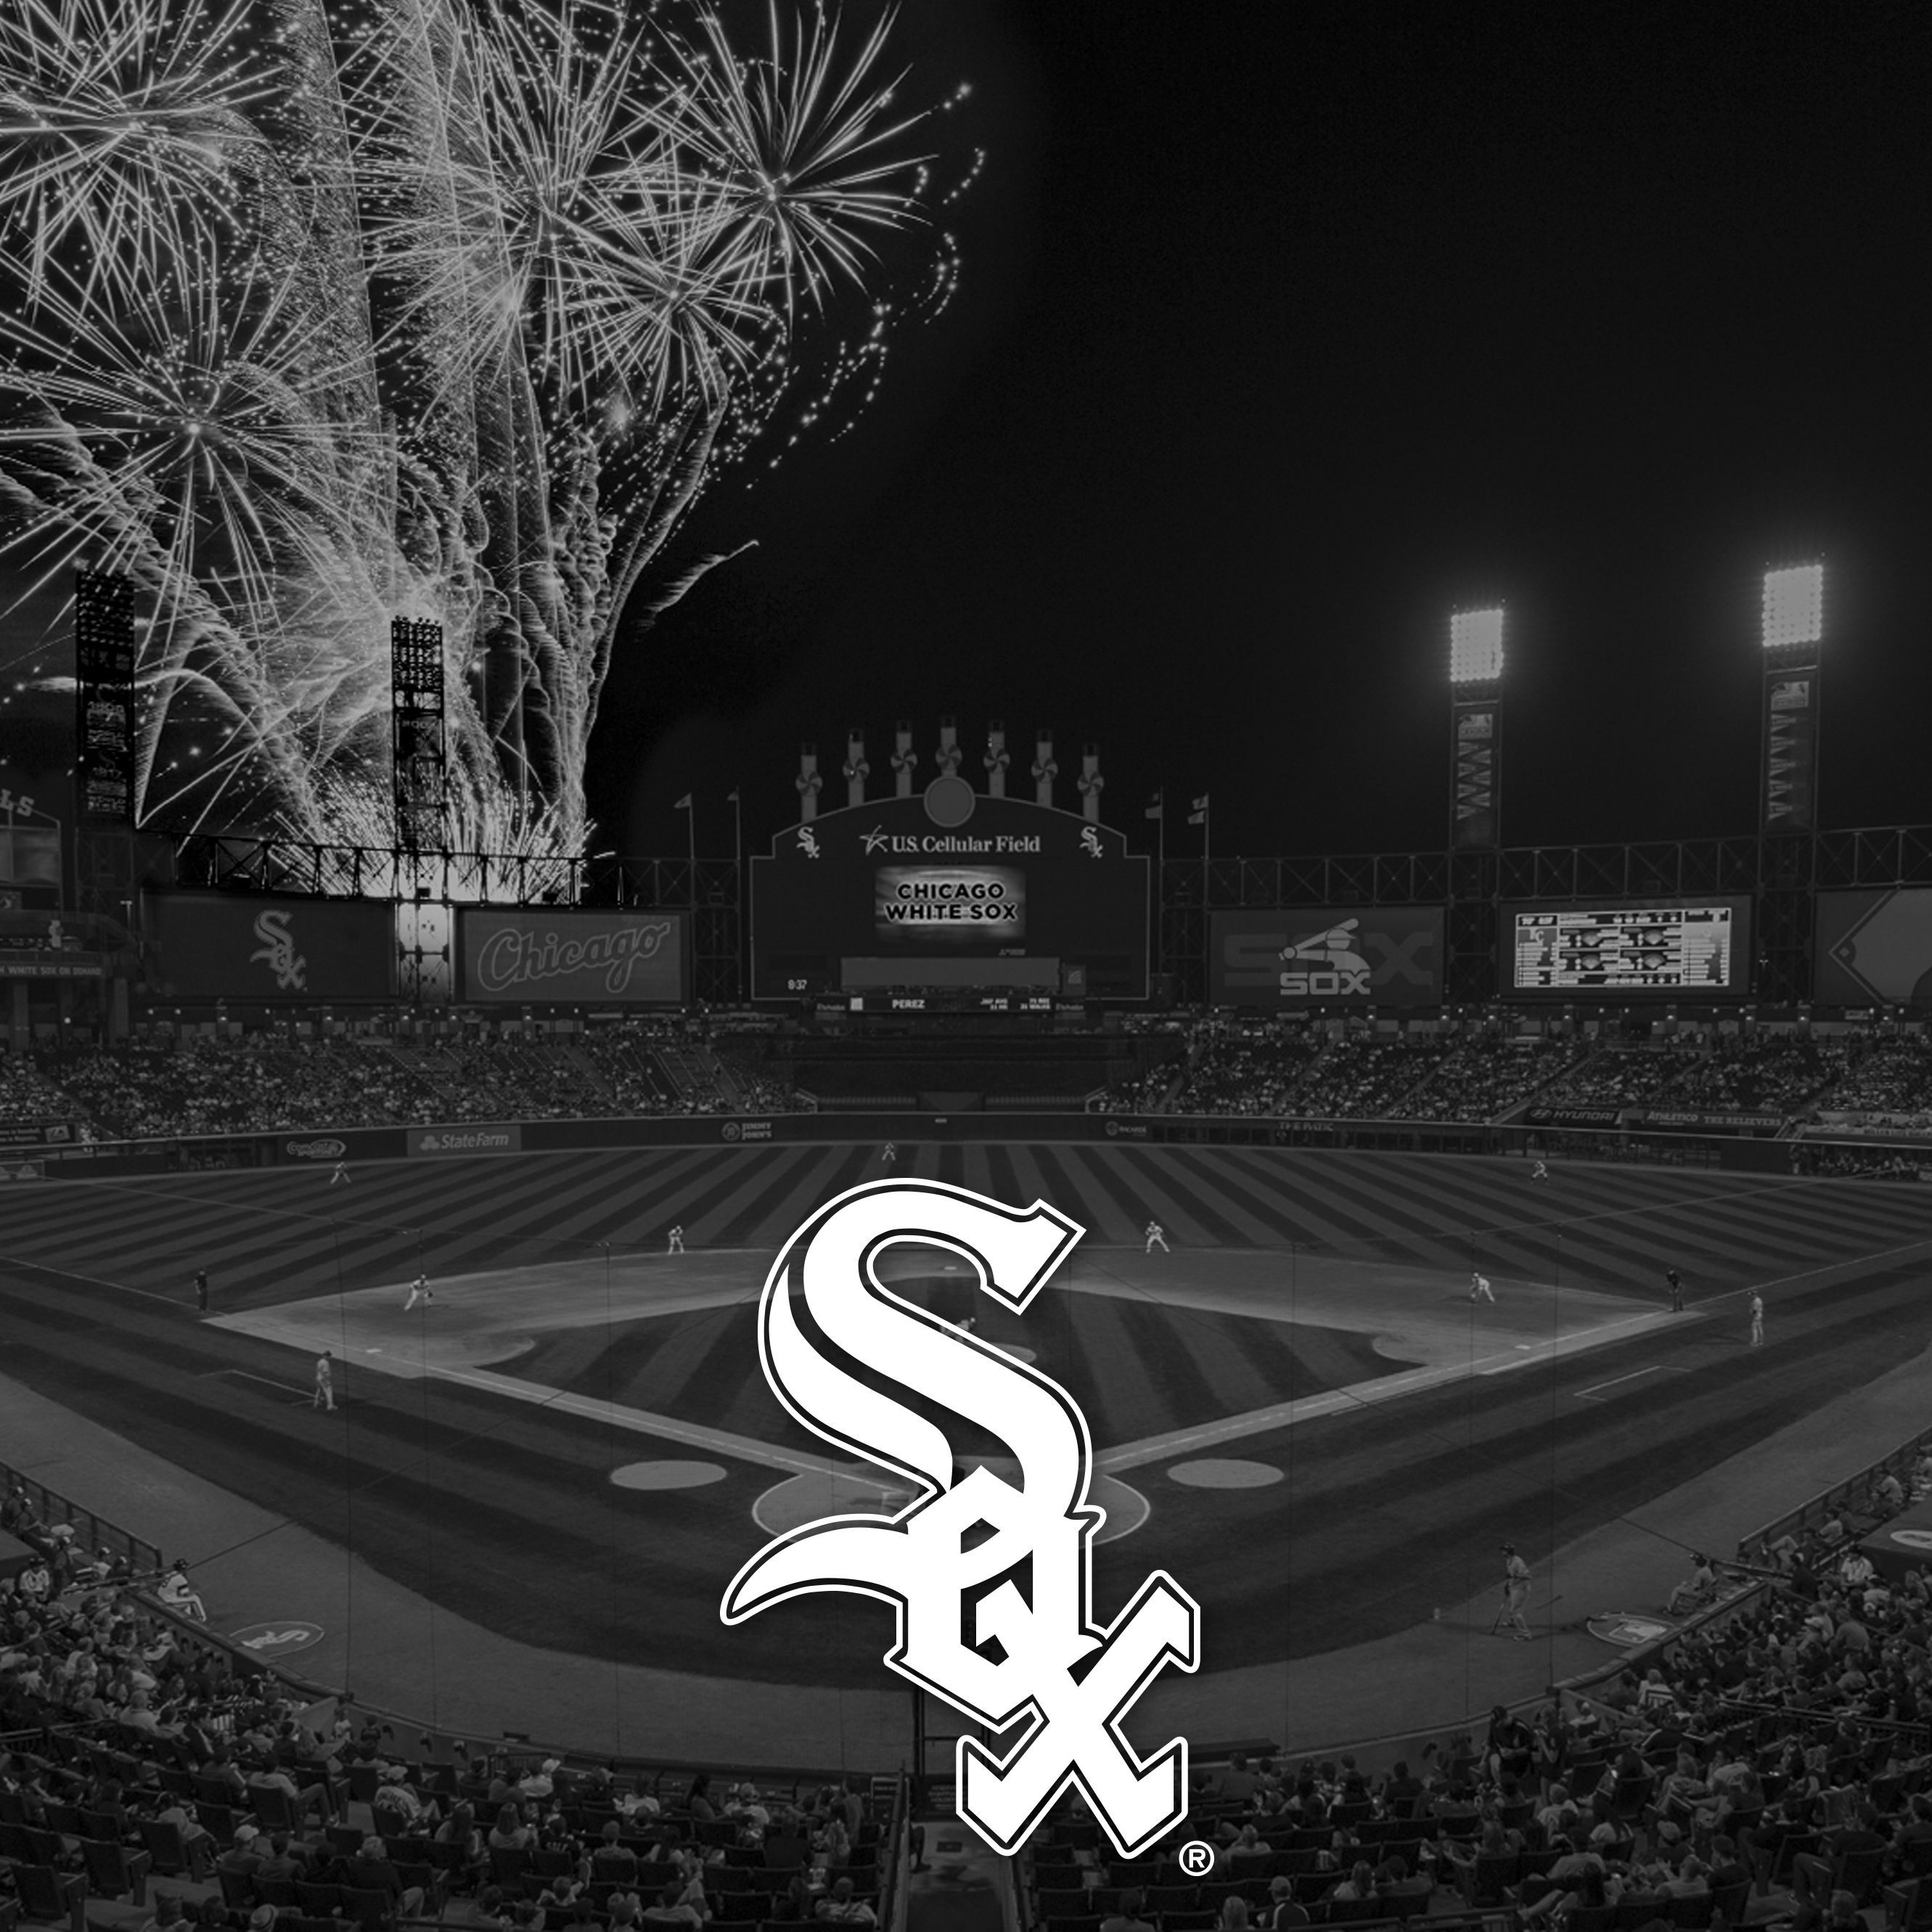 2662x2662 White Sox Wallpapers | Chicago White Sox | Adorable Wallpapers ...